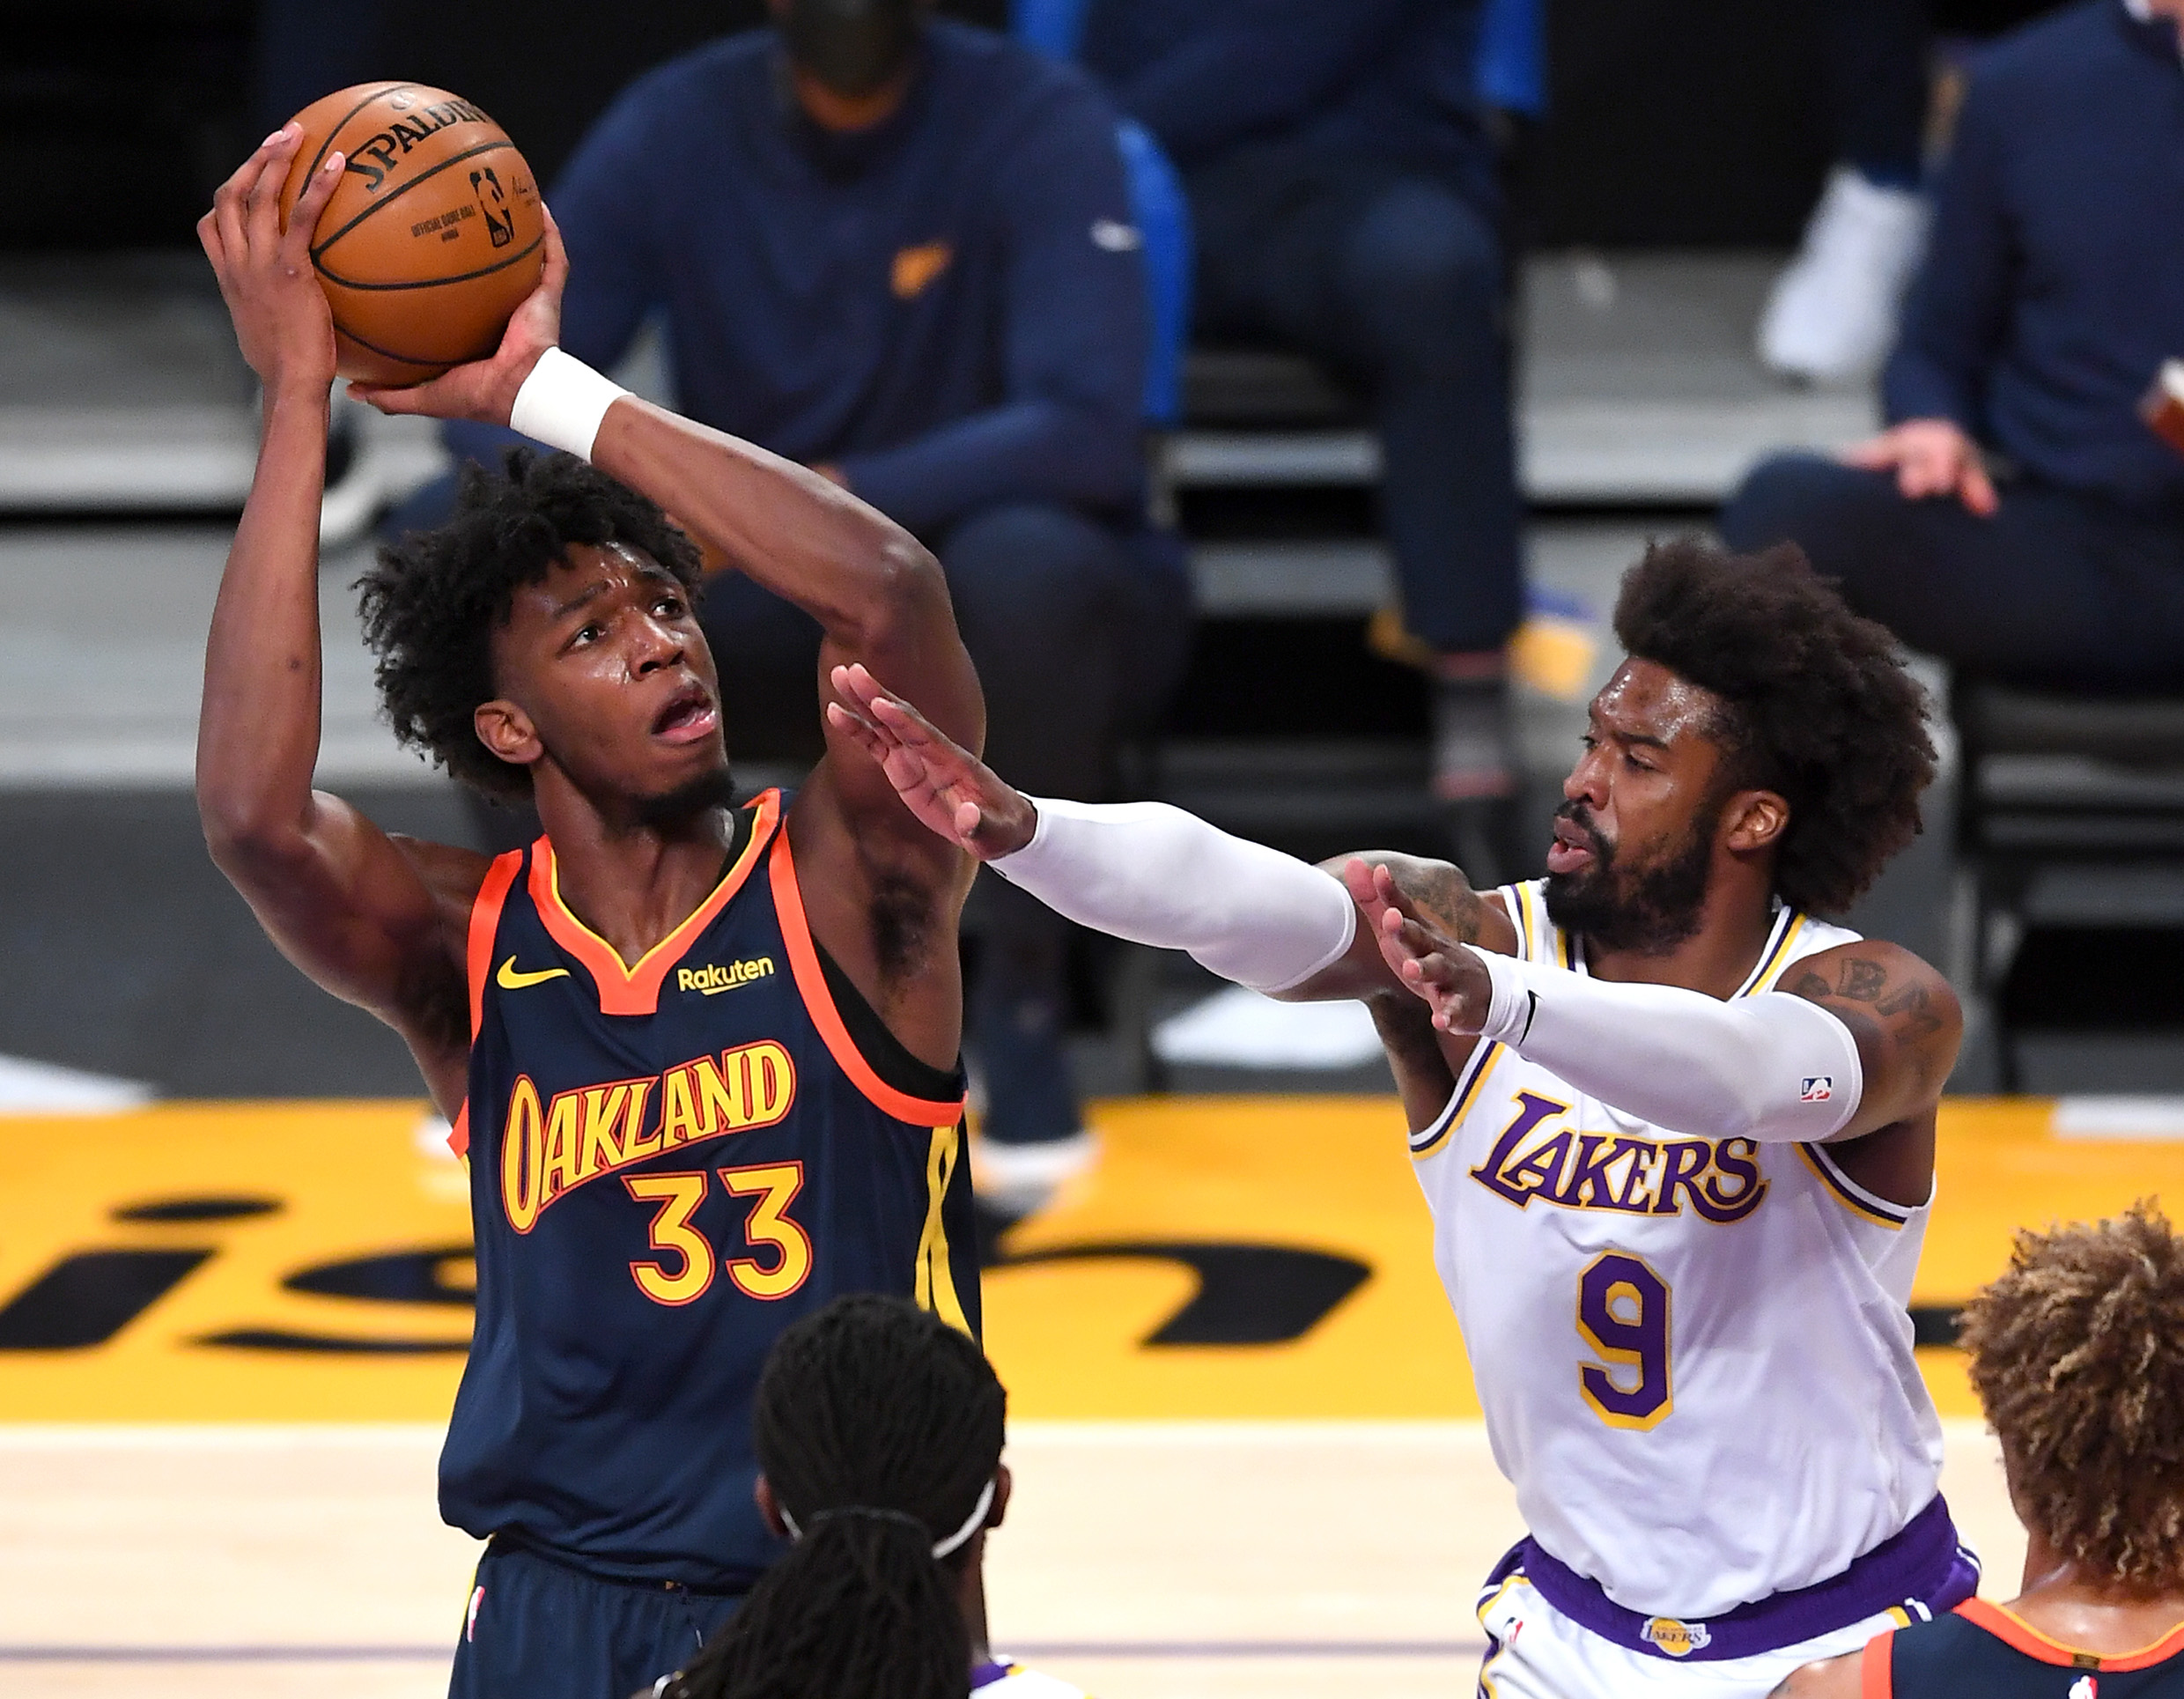 Feb 28, 2021; Los Angeles, California, USA; Golden State Warriors center James Wiseman (33) takes a shot over Los Angeles Lakers guard Wesley Matthews (9) in the first half of the game at Staples Center.